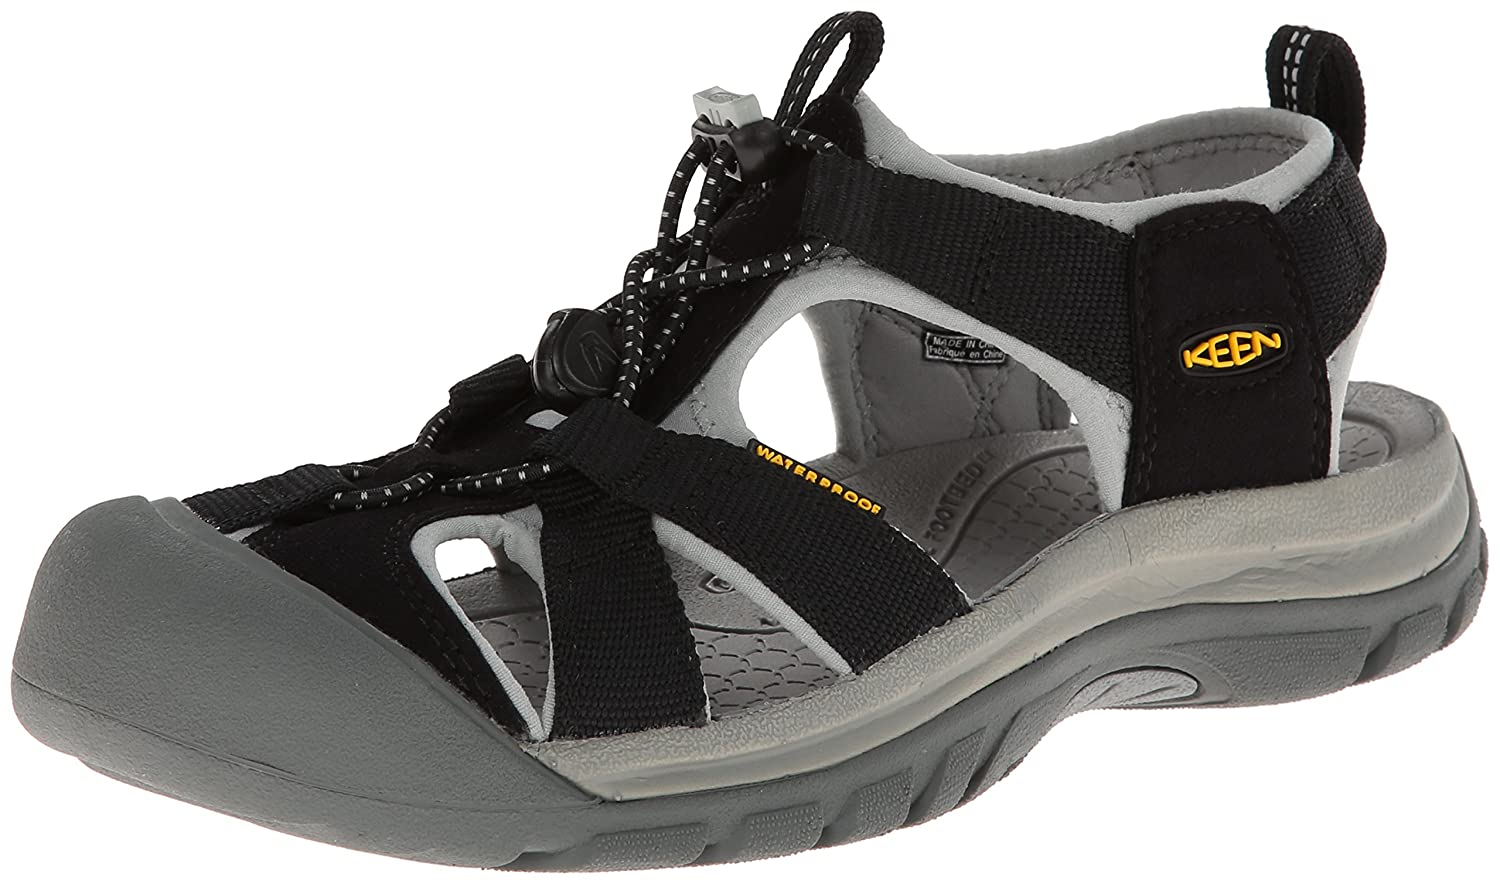 KEEN Women's Venice H2 Sandal B00HGAG6KK 6.5 B(M) US|Black/Neutral Gray